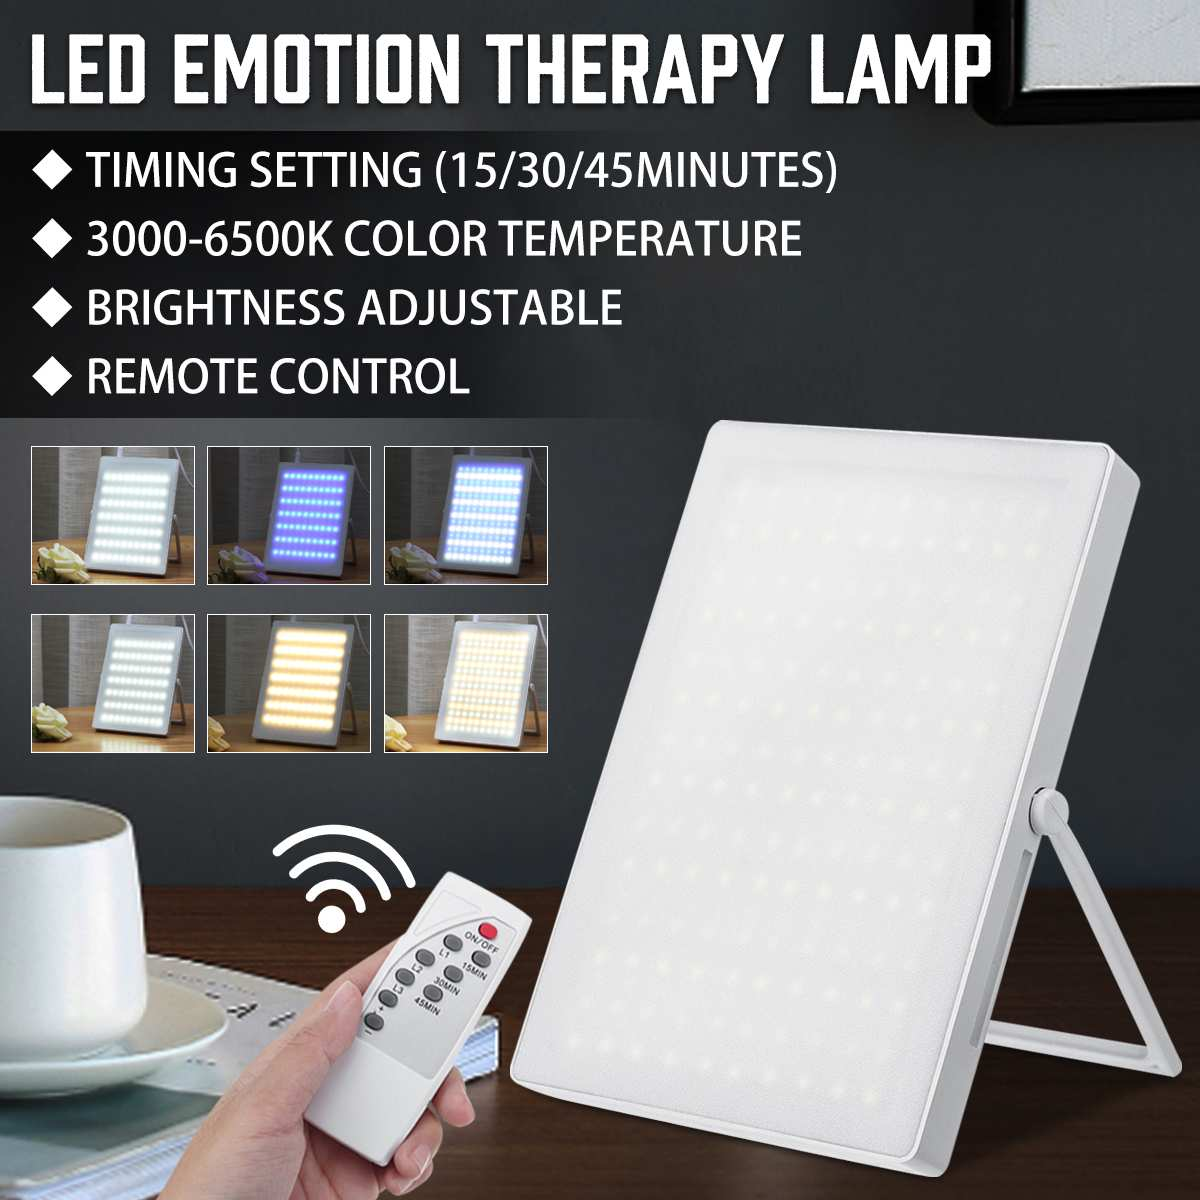 5V SAD LED Light Remote Control SAD LED Happy Light Phototherapy Therapy Lamp Seasonal Affective Disorder Relief Listless Tired